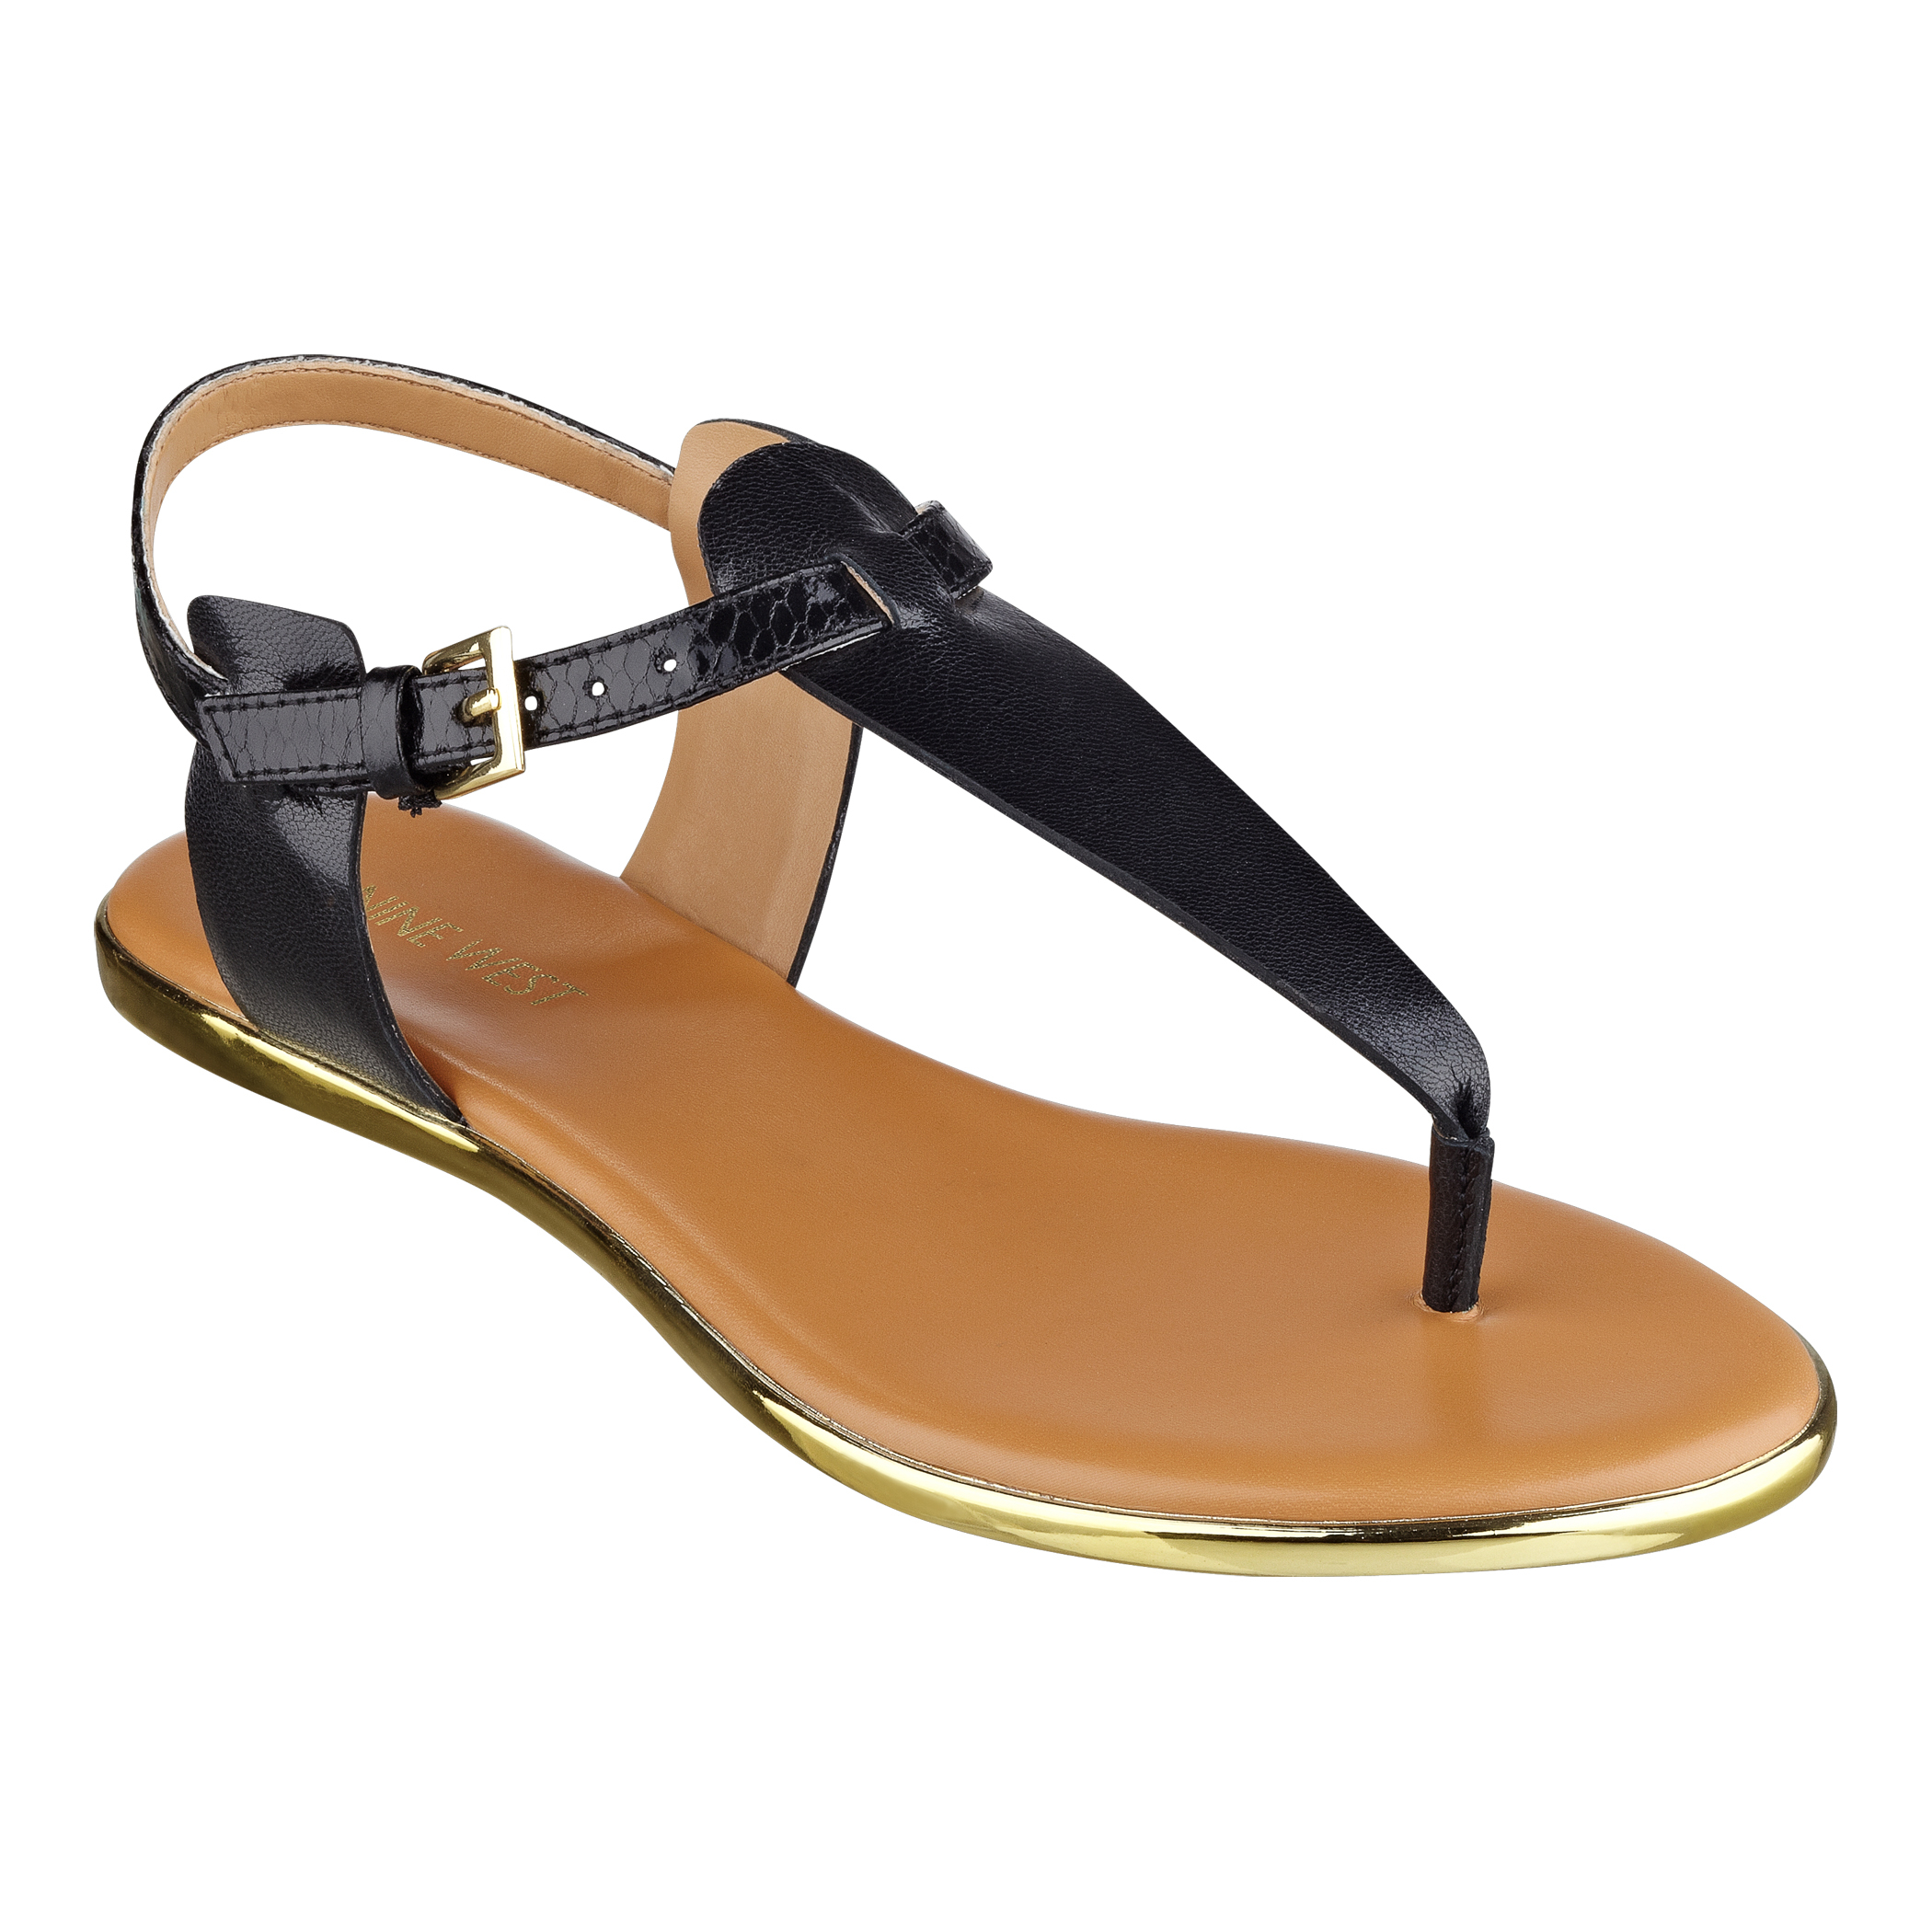 cd4709b5c4d1 Lyst - Nine West Rizzy Flat Sandals in Black